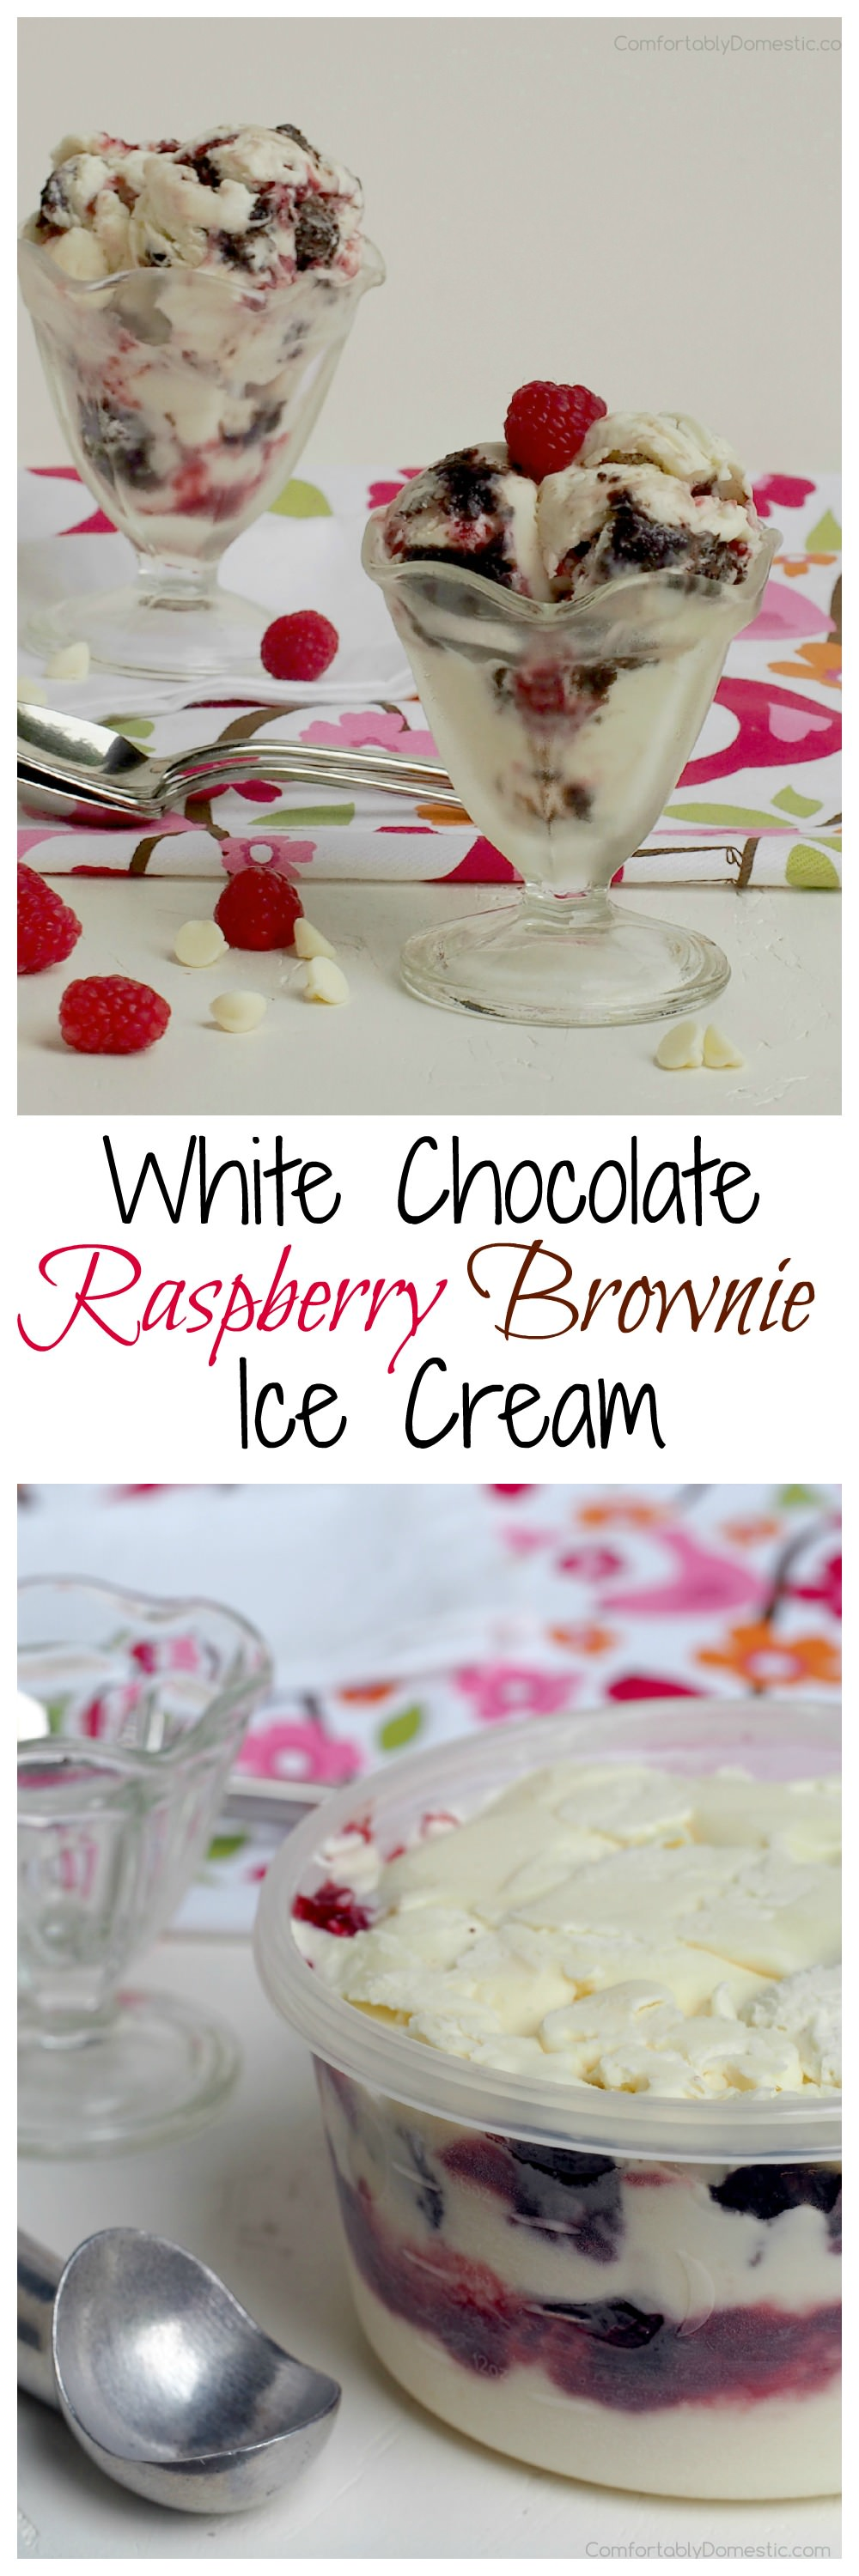 White-Chocolate-Raspberry-Brownie-Ice-Cream | ComfortablyDomestic.com